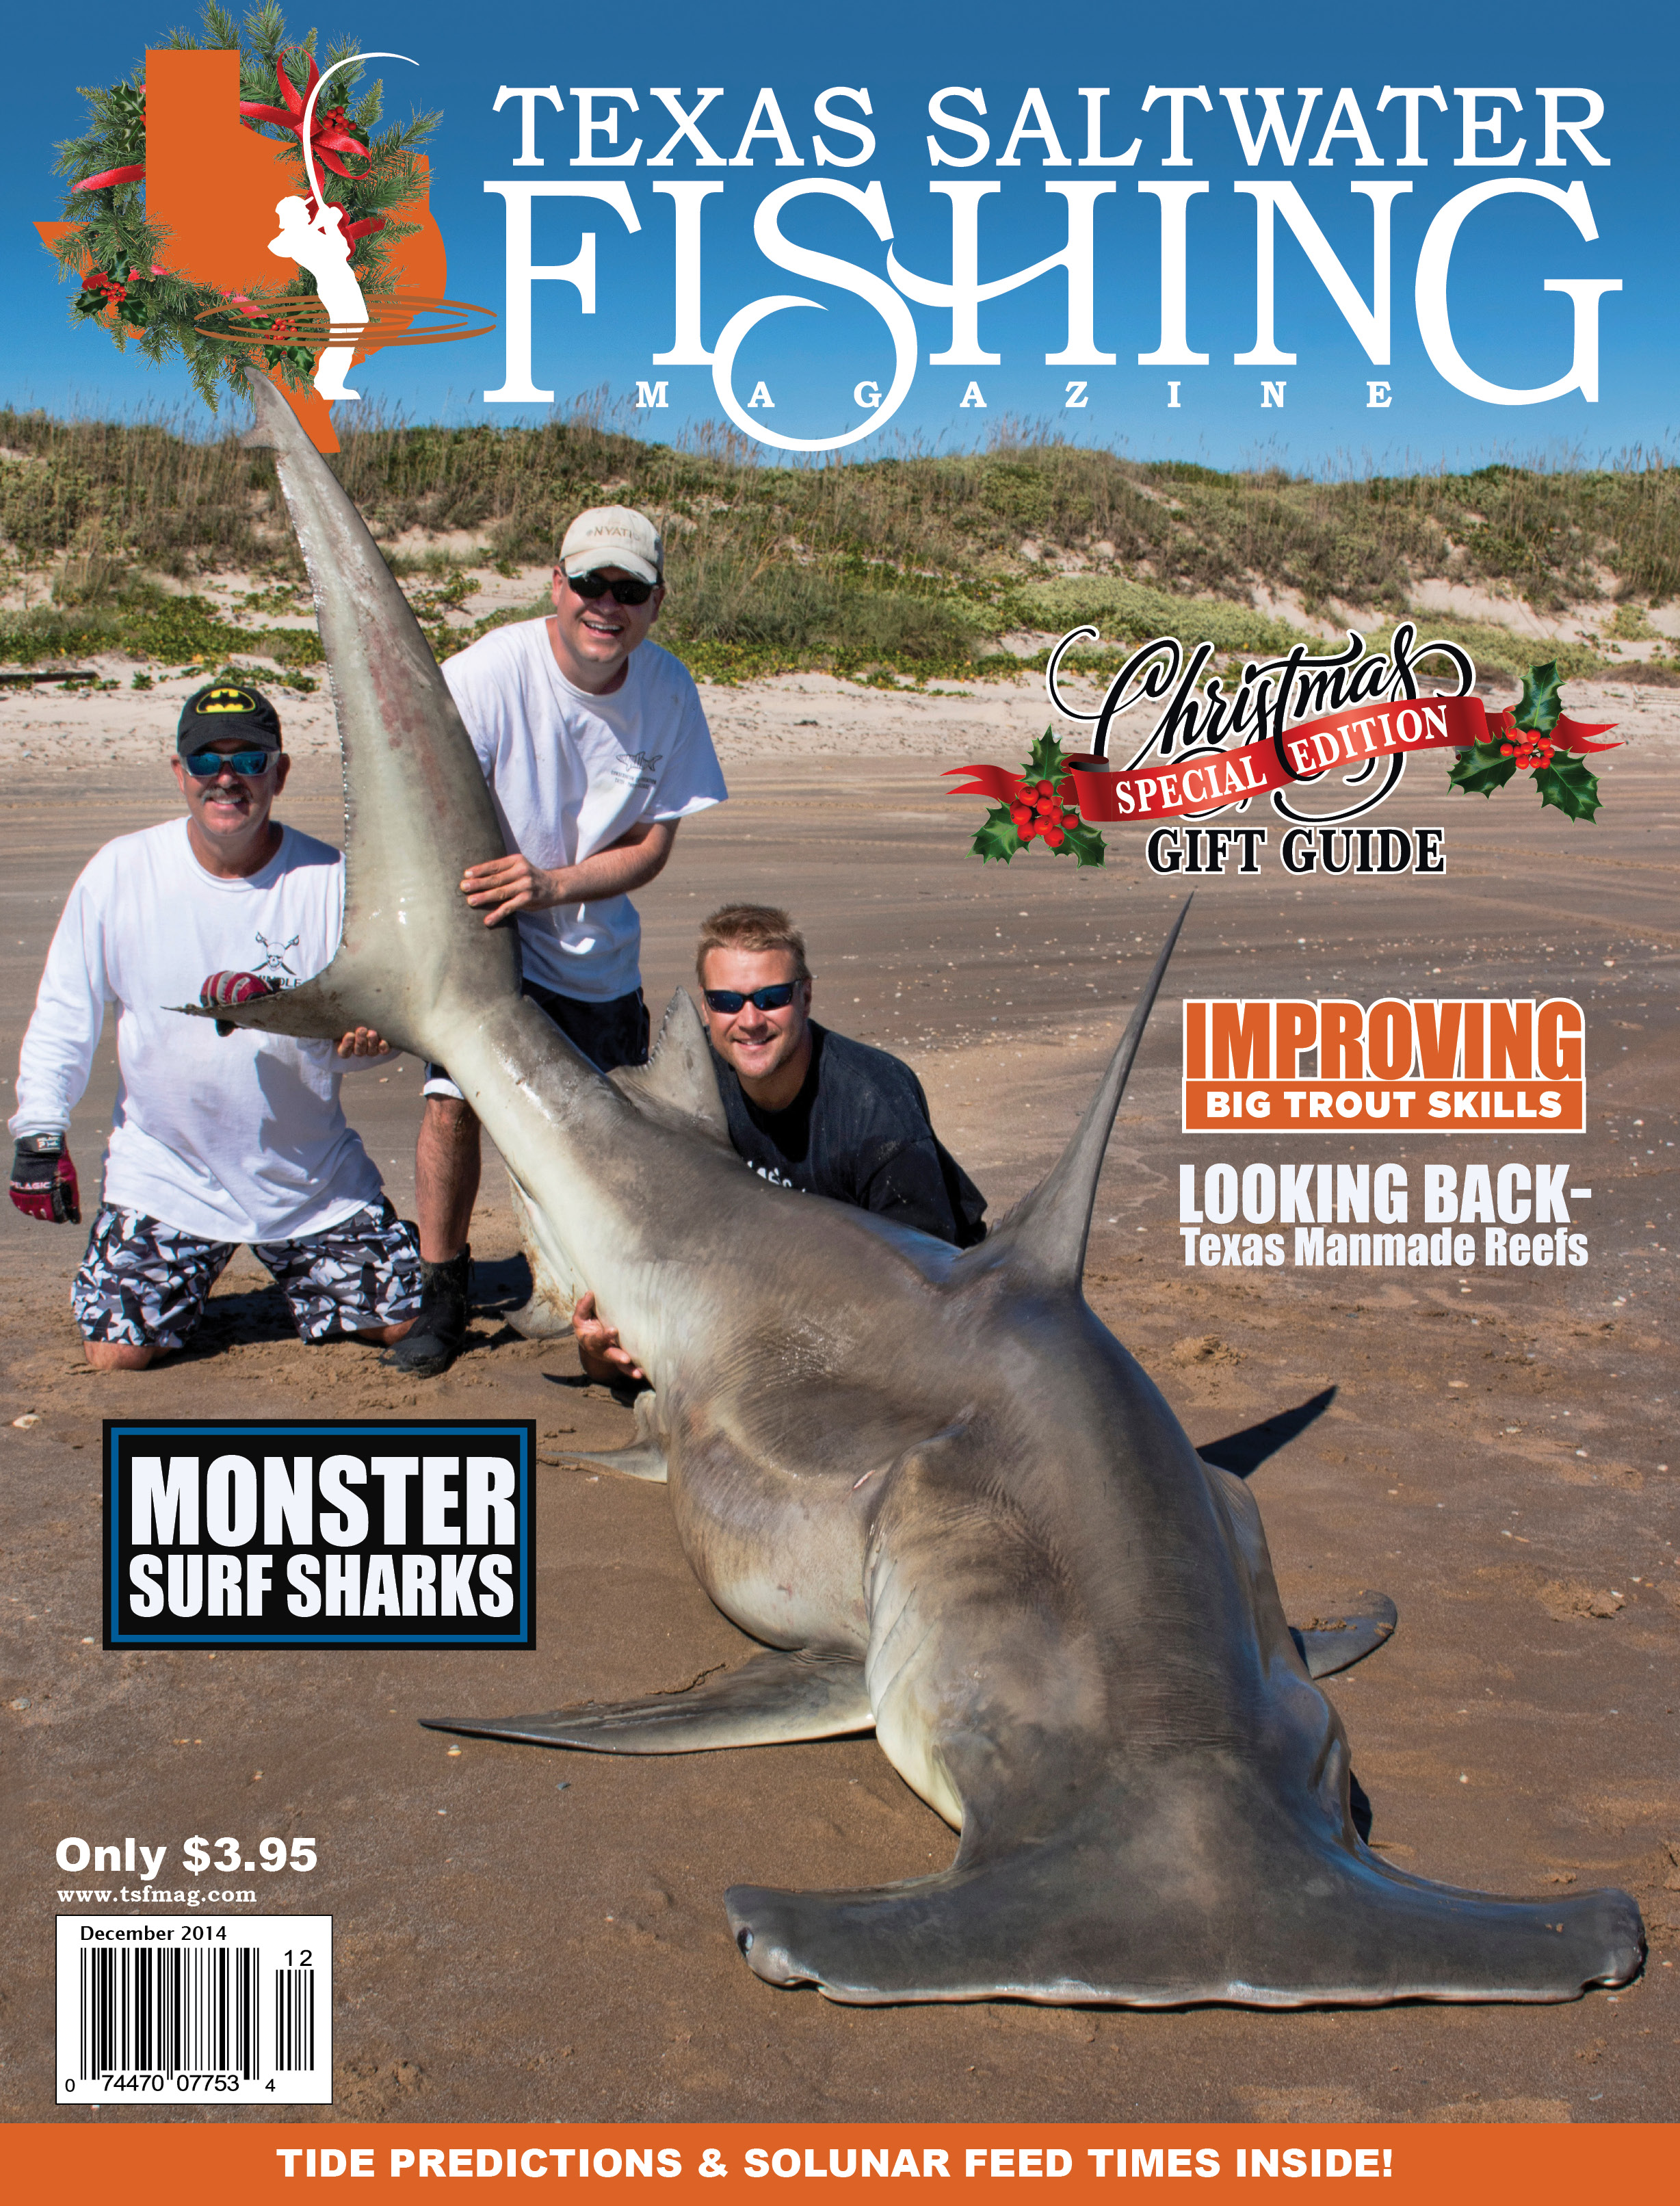 Texas saltwater fishing magazine december 2014 for Texas saltwater fishing magazine